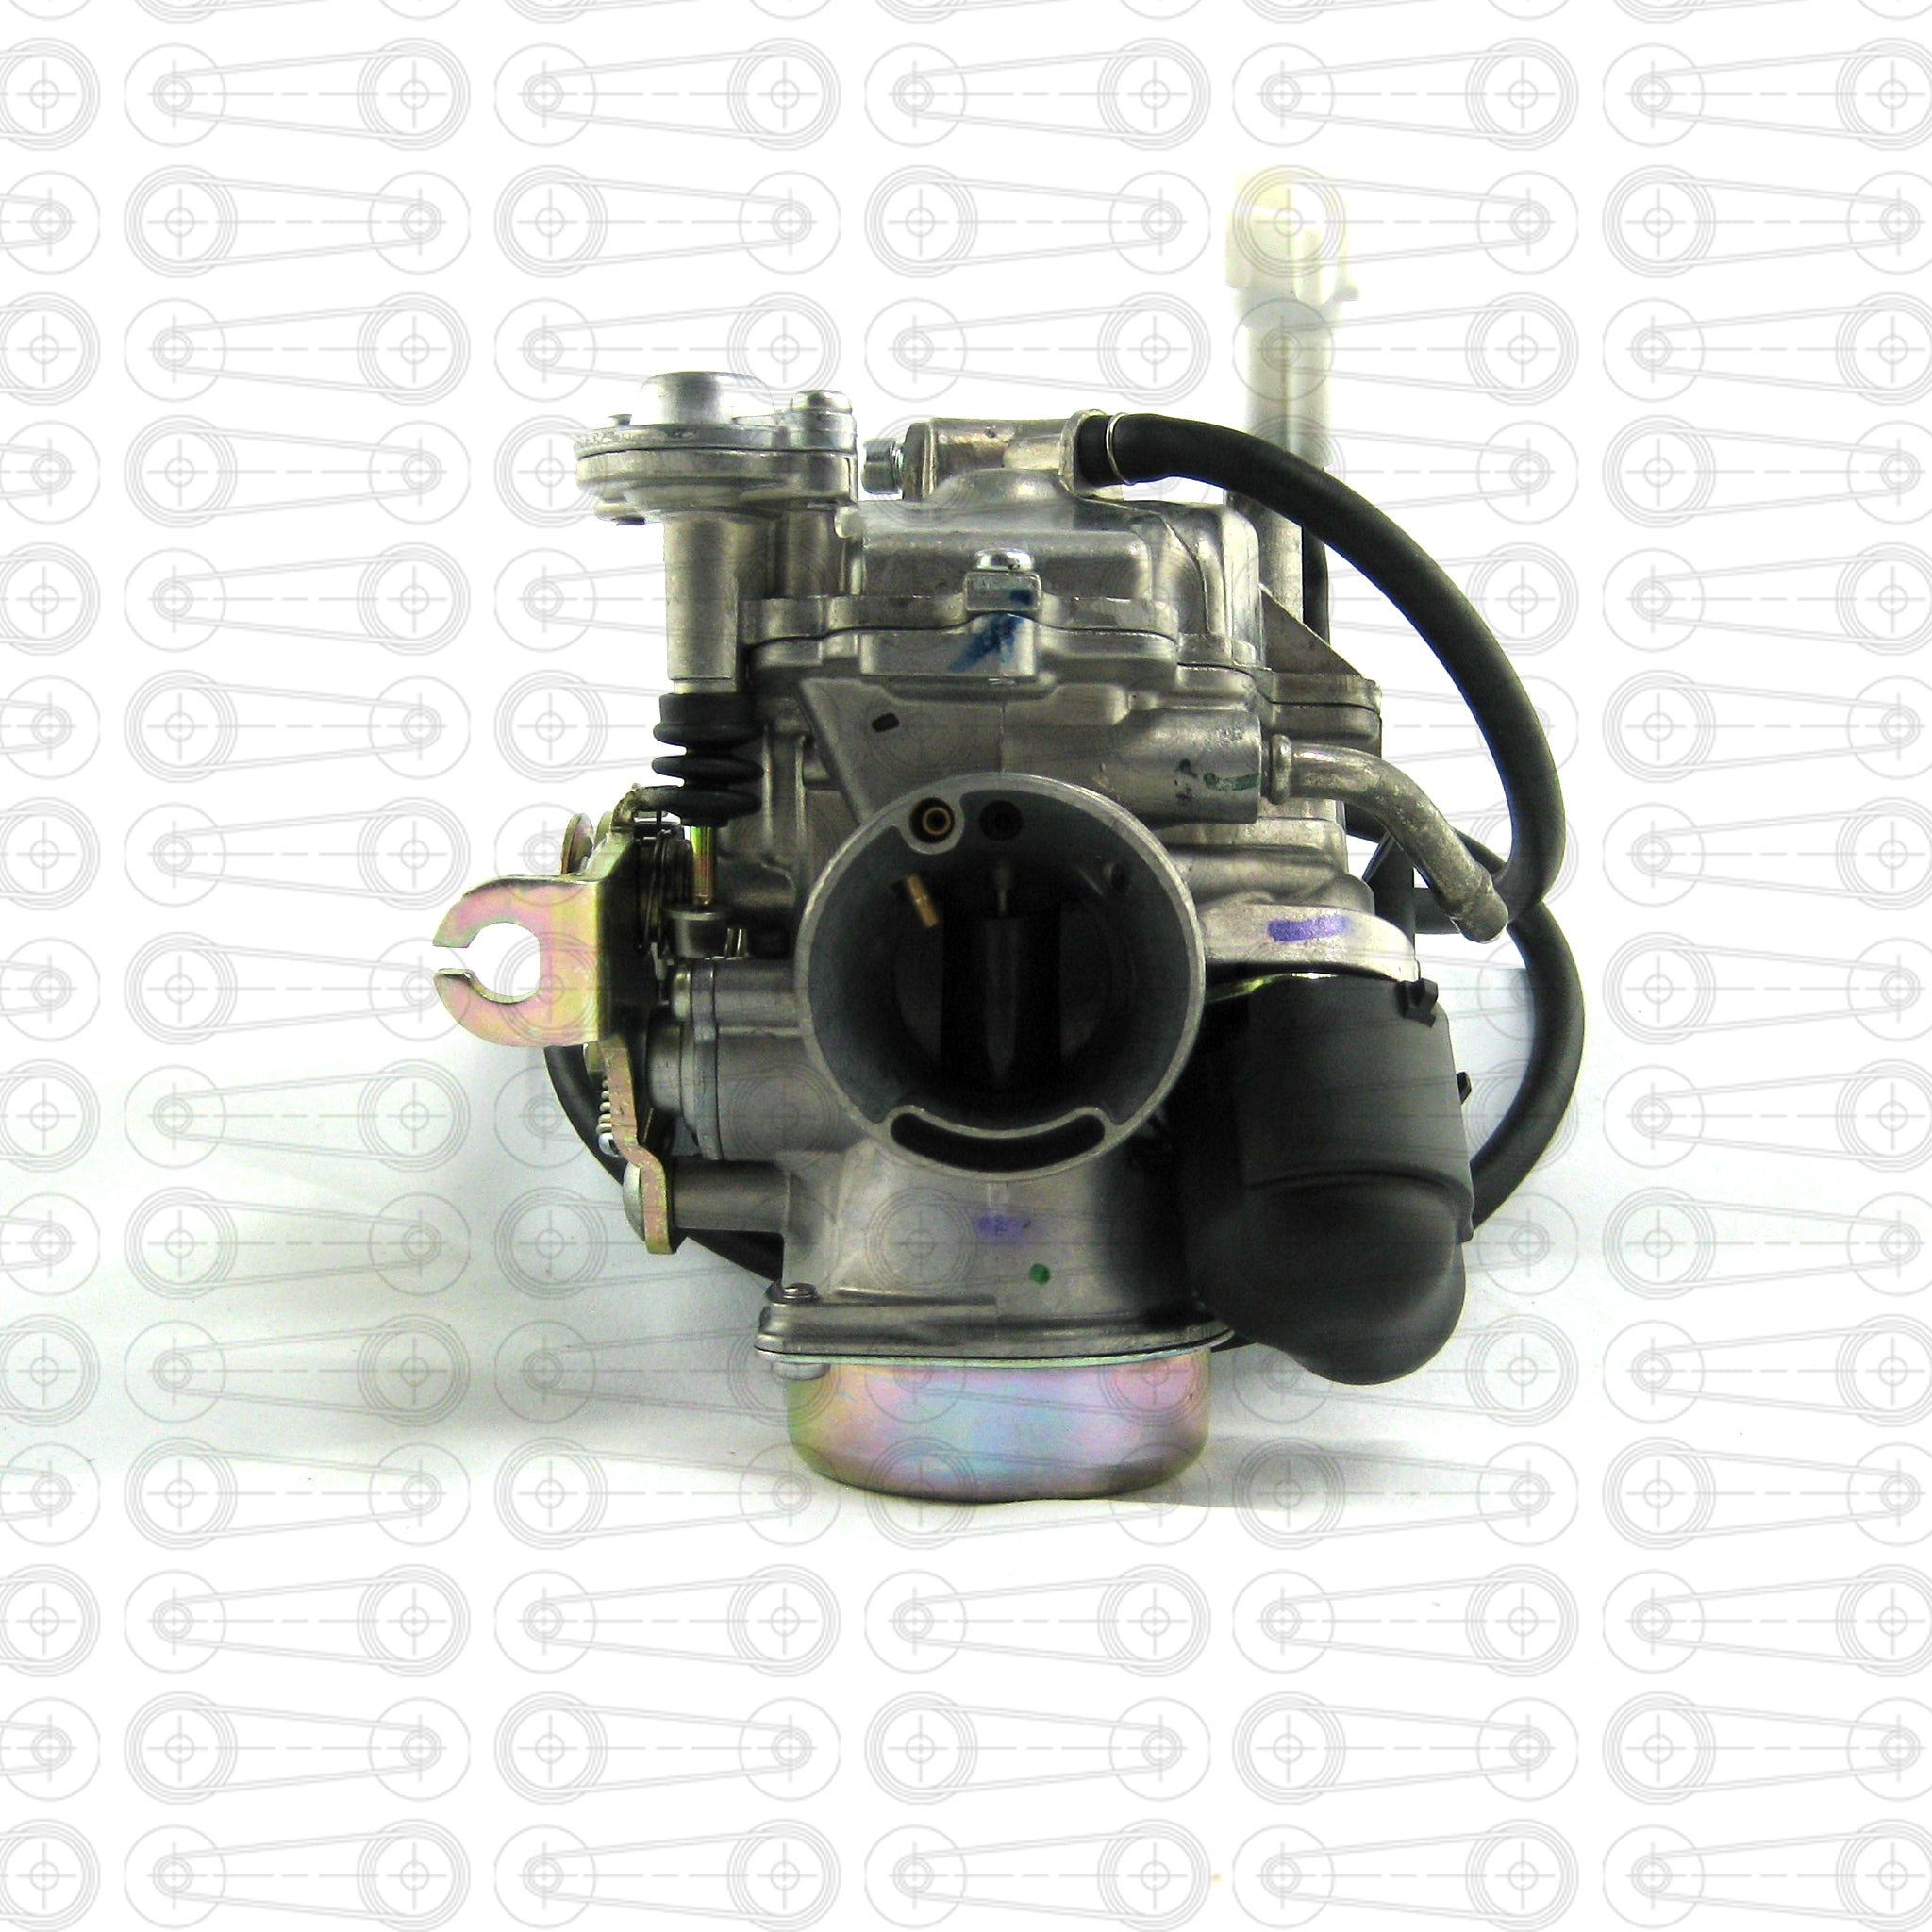 KEIHIN - 26mm Carburetor (CVK)